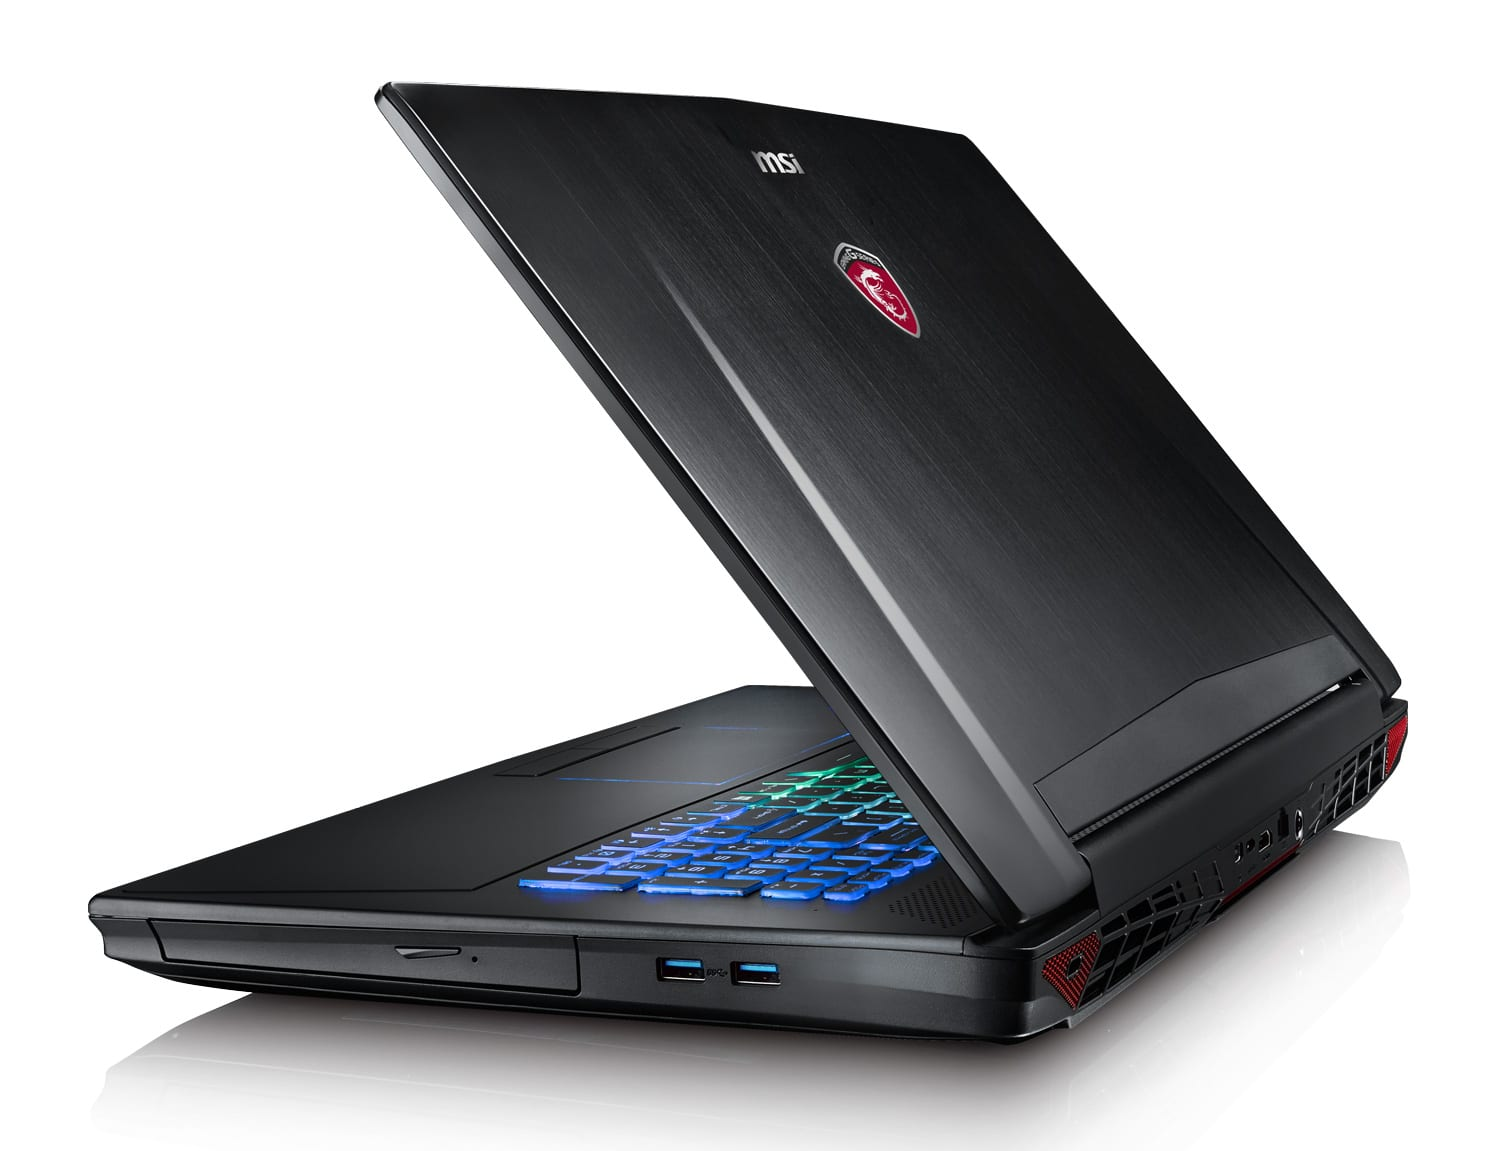 MSI GT72VR 7RD-498, PC portable 17 pouces GTX 1060 Quad Kaby SSD 1899€